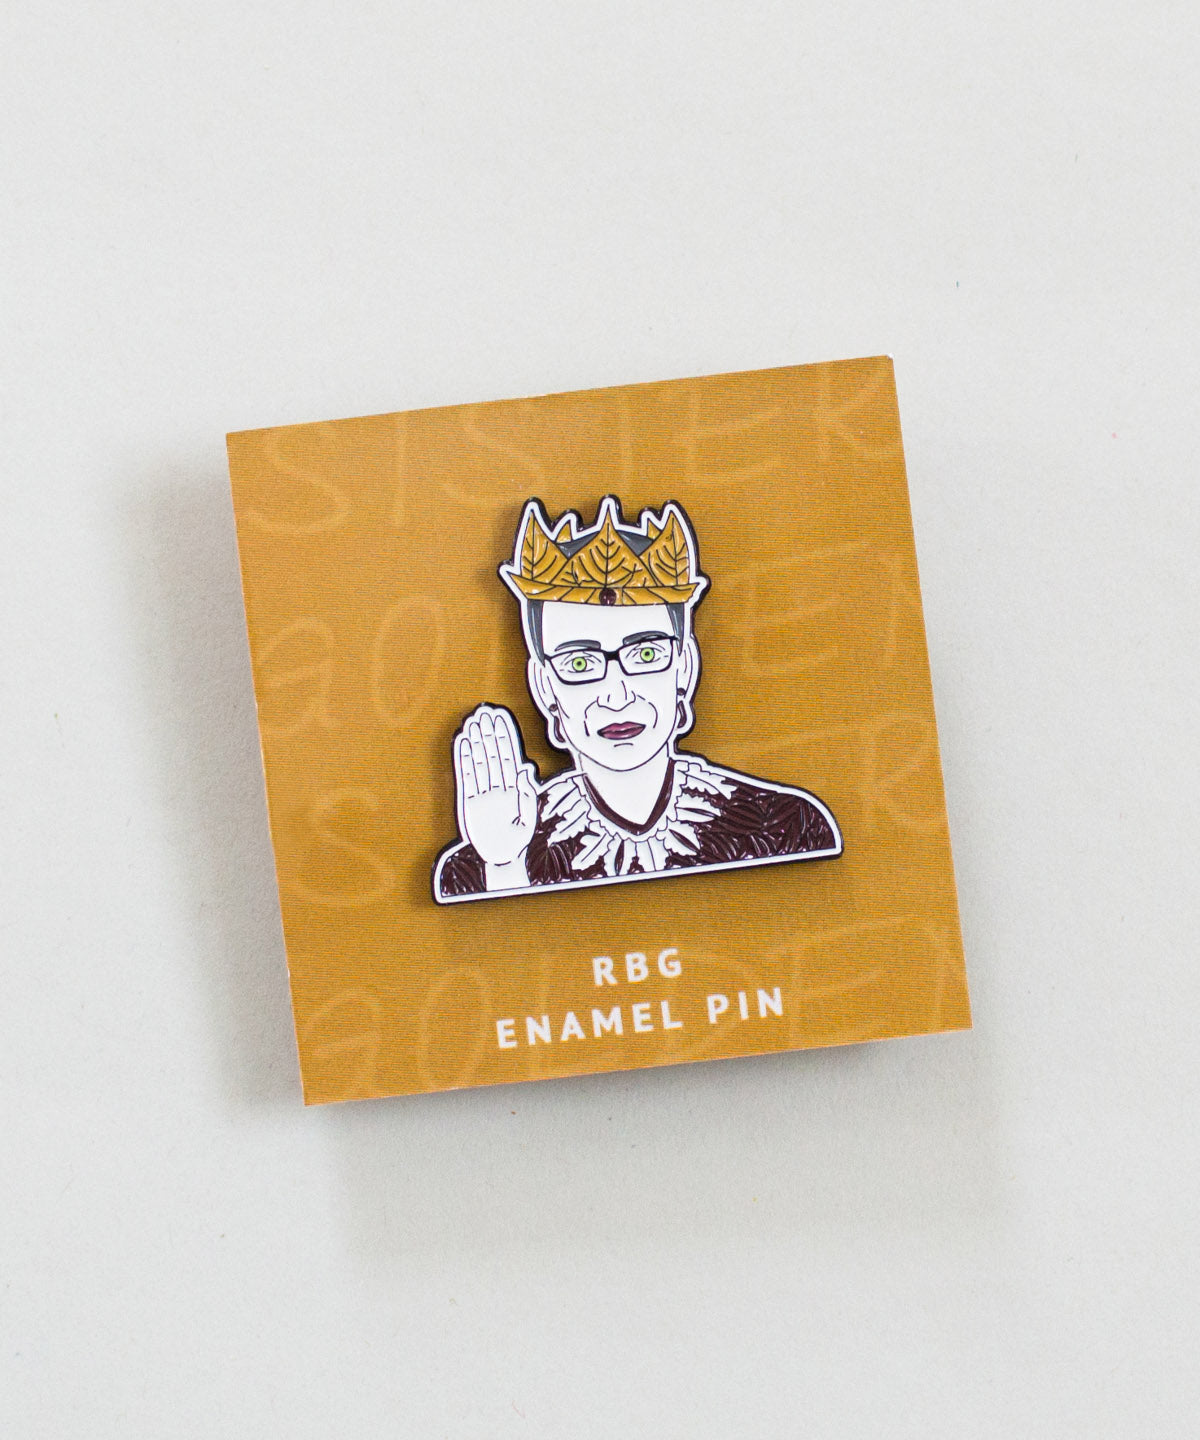 RBG Enamel Pin - Sister Golden